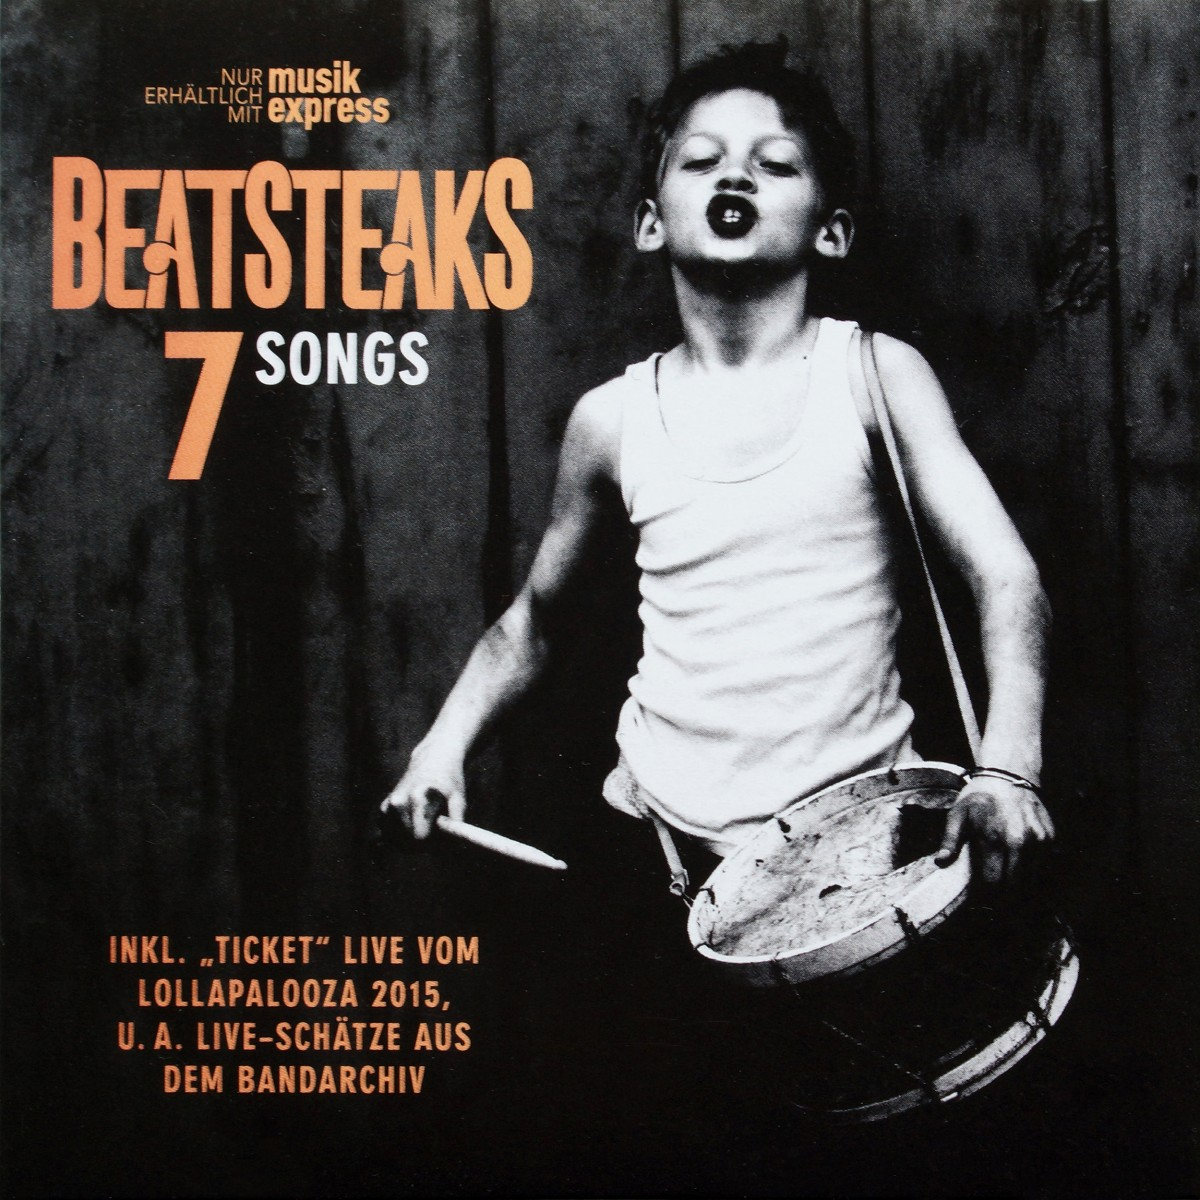 Beatsteaks: 7 Songs (2015)